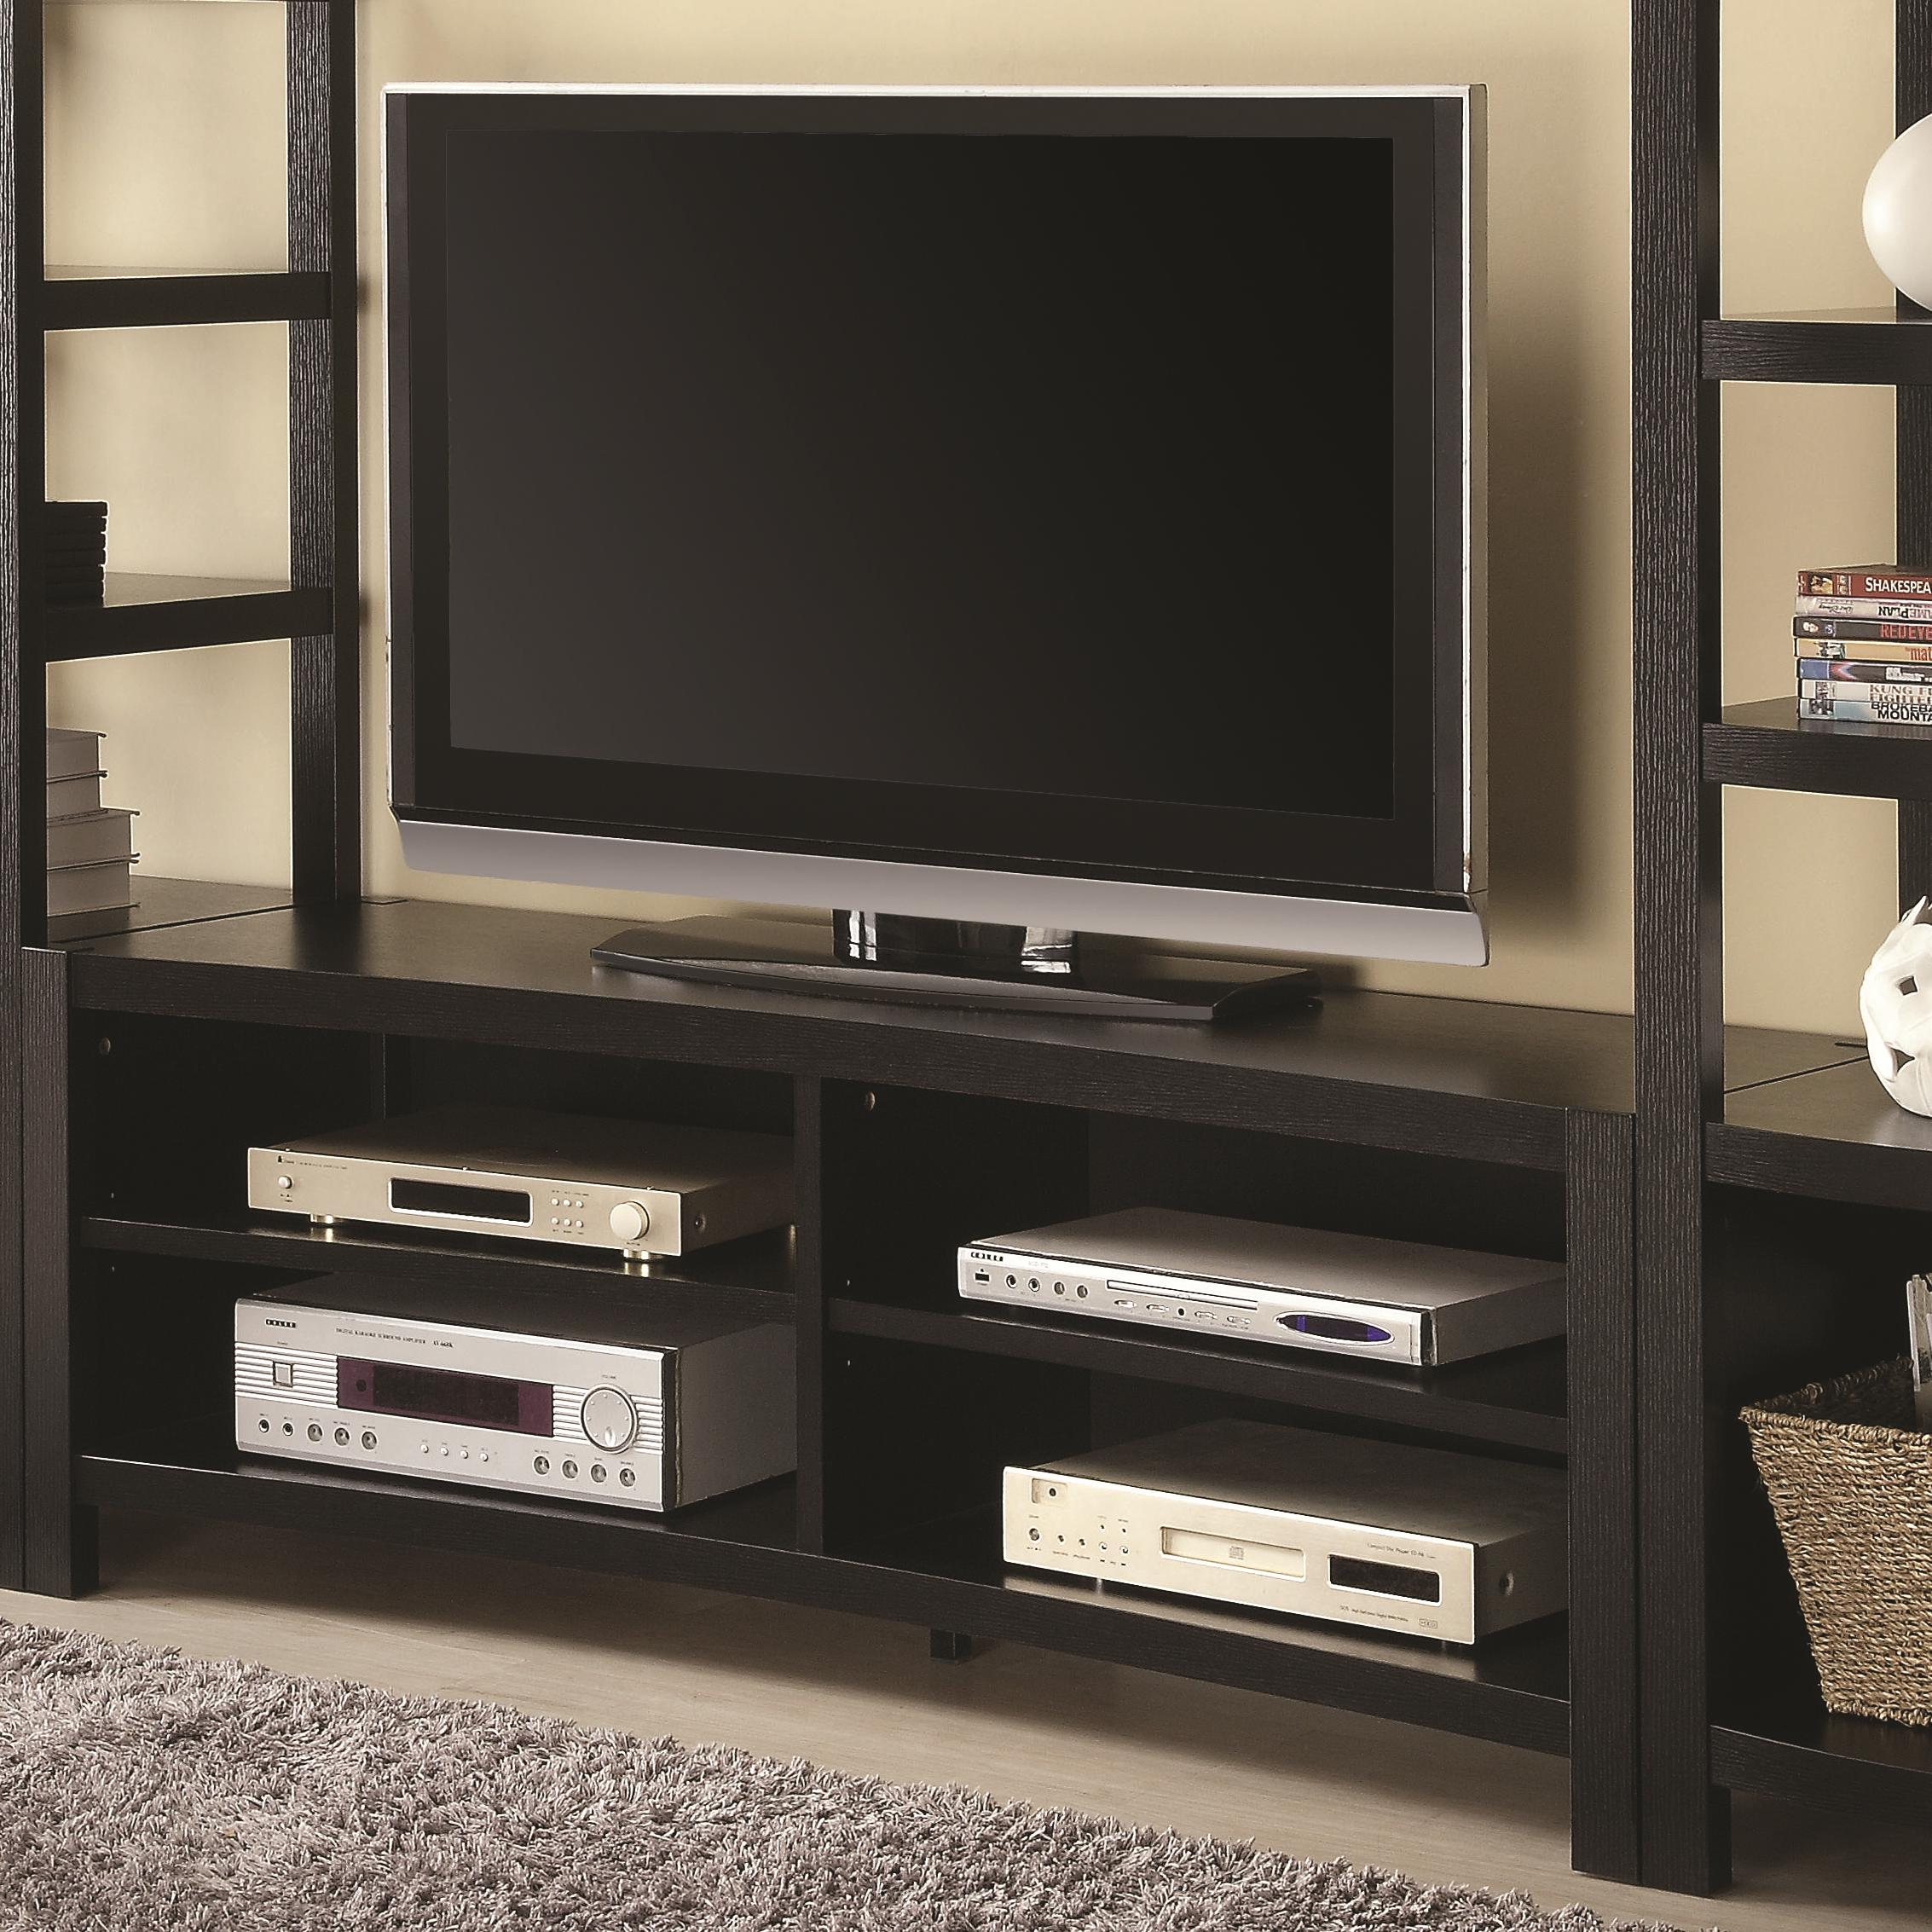 700697 entertainment units inverted curved front tv console